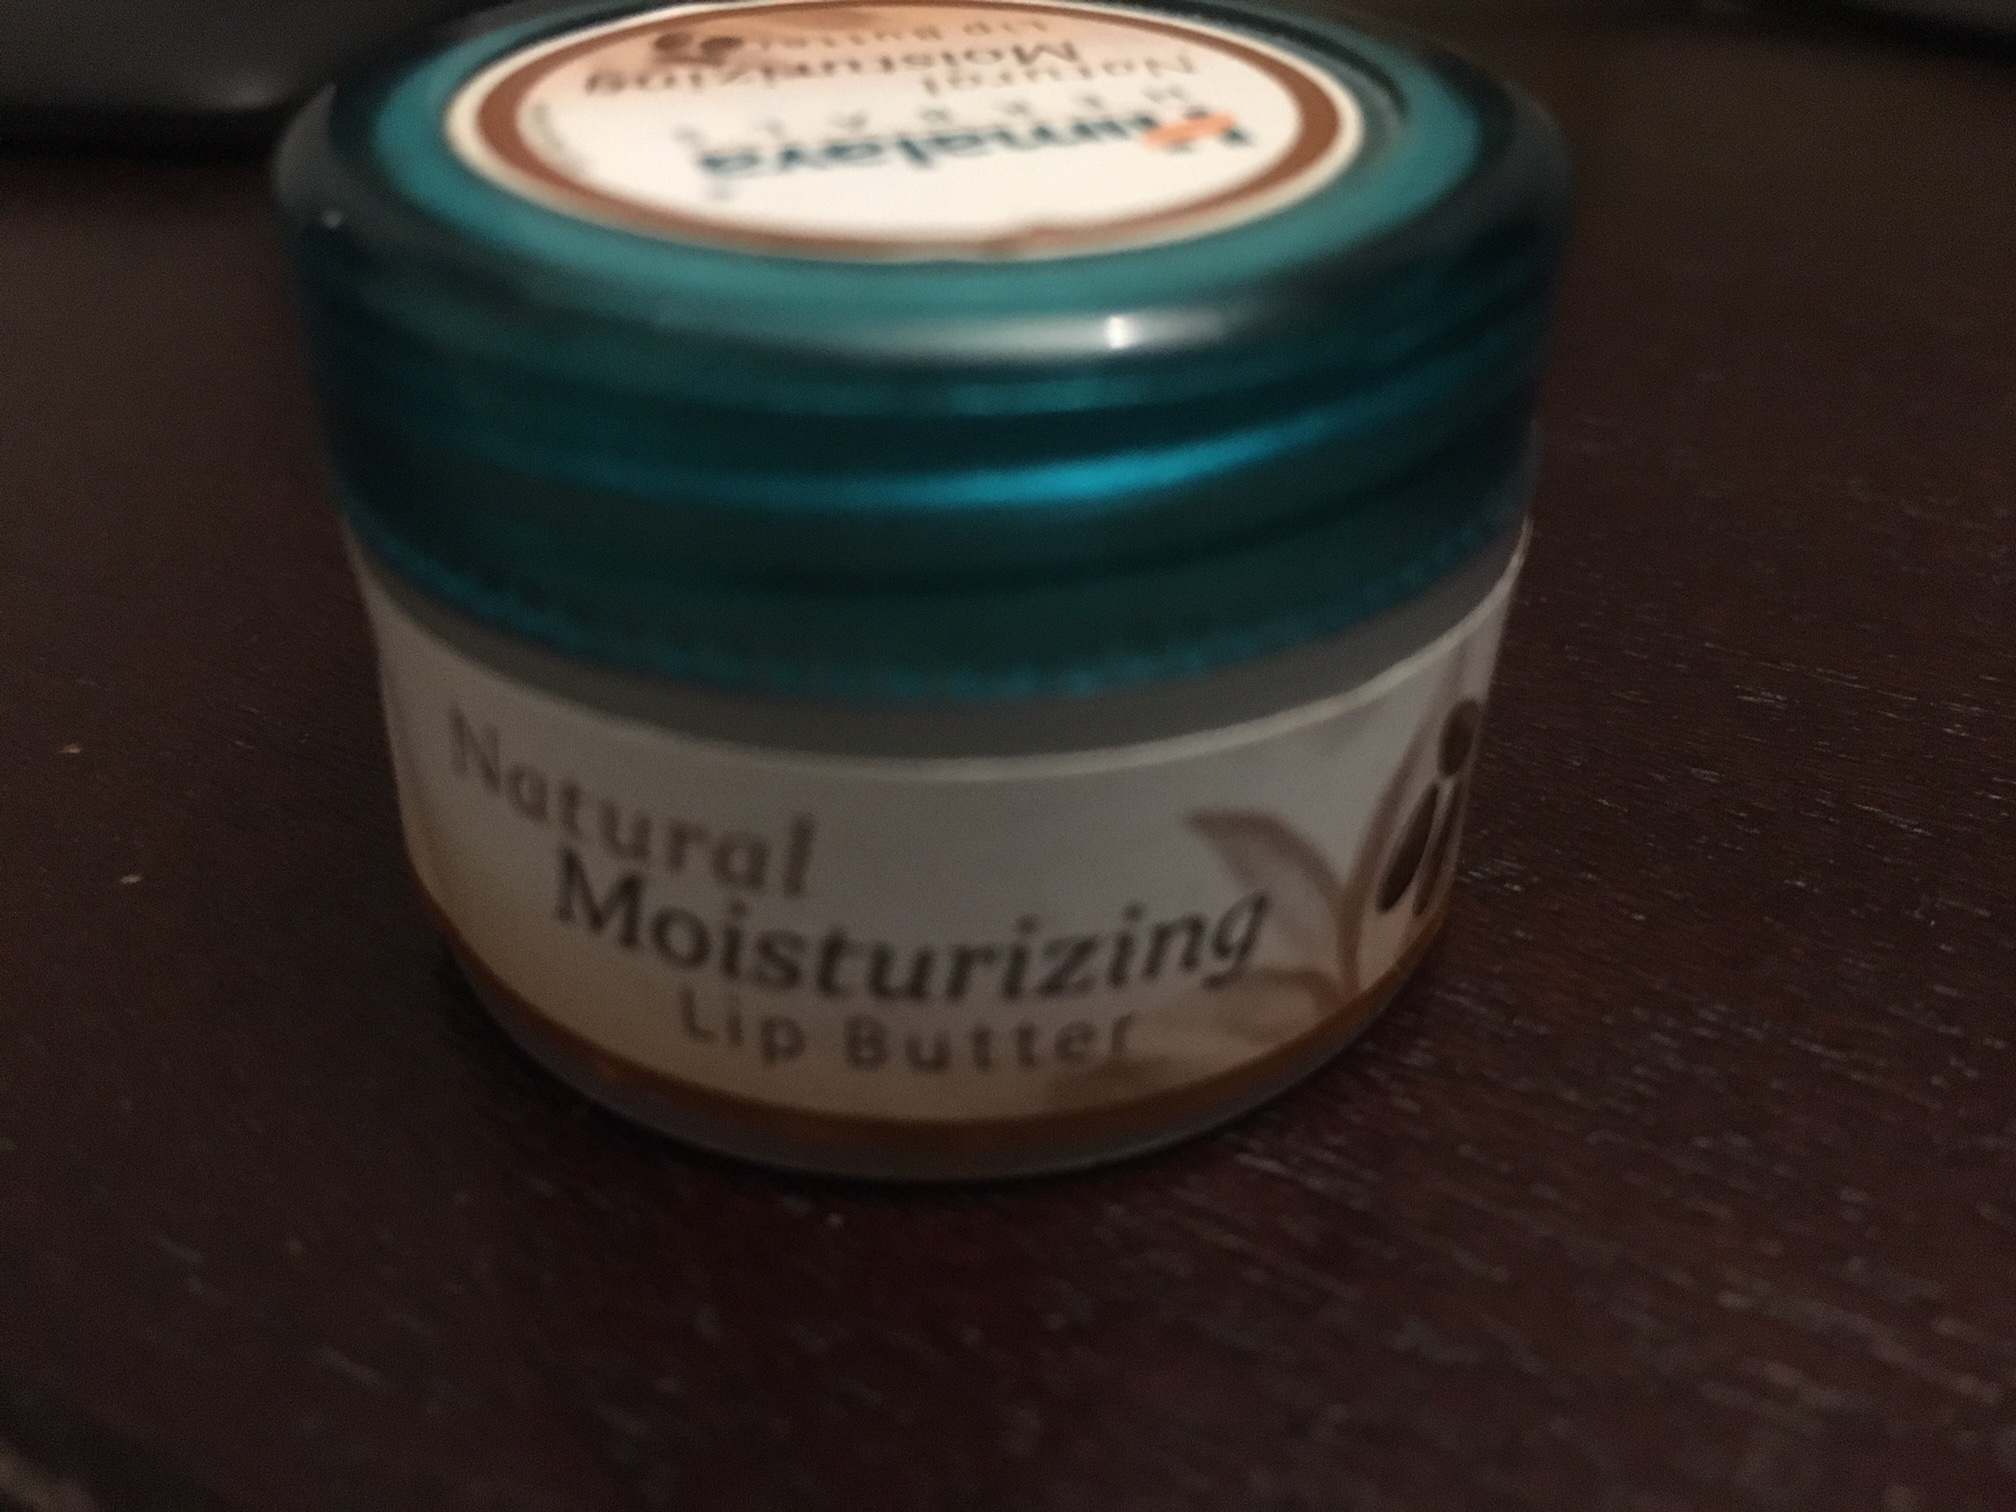 Himalaya Herbals Natural Moisturizing Lip Butter -Amazing for the lips-By prernakapur